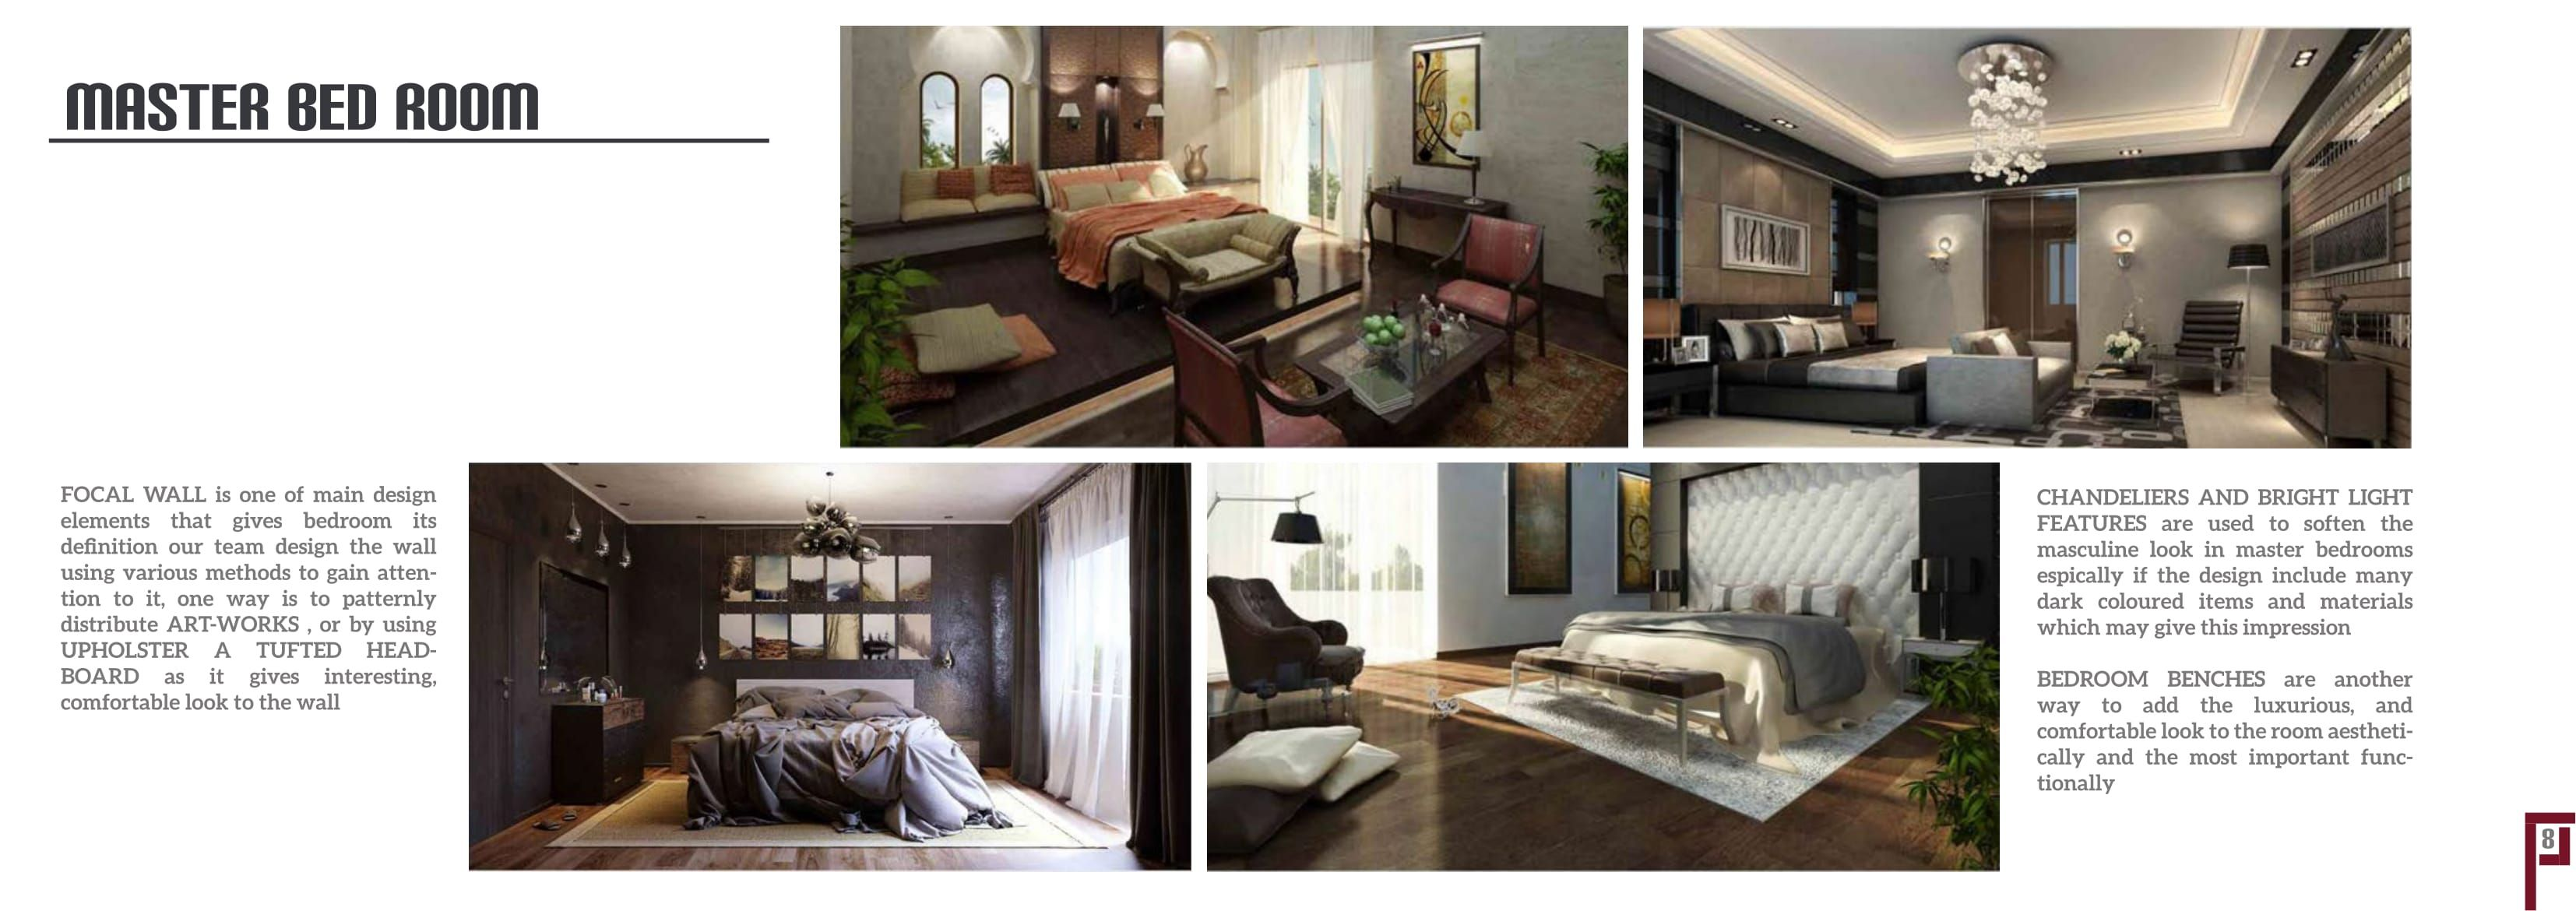 Pin by portray interiors and decor on PORTRAY INTERIORS AND DECOR ...